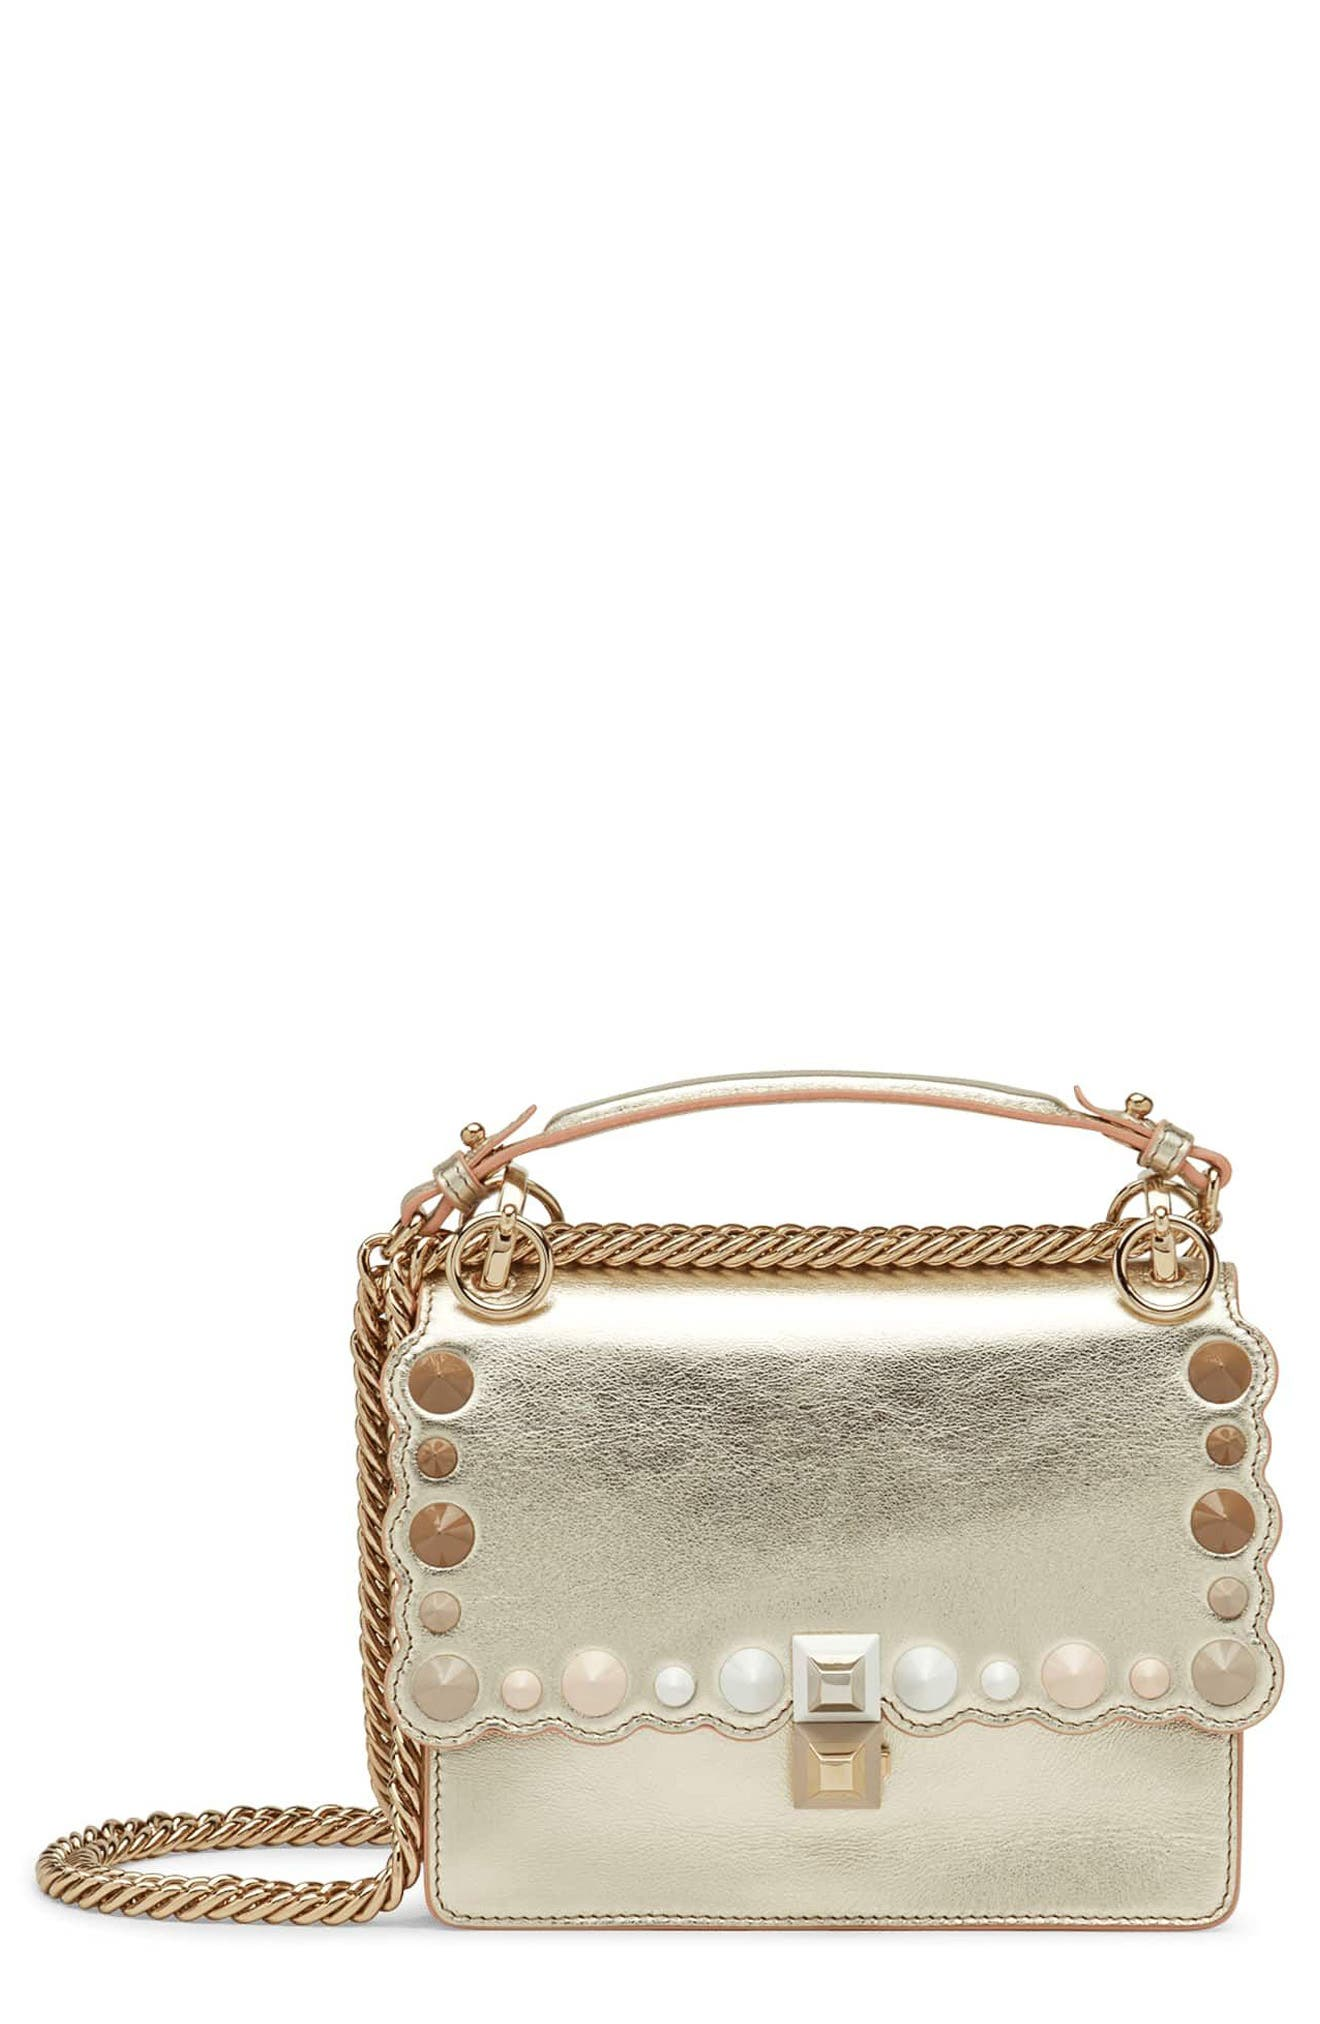 Small Kan I Metallic Leather Shoulder Bag,                             Main thumbnail 1, color,                             CHAMPAGNE/ ORO